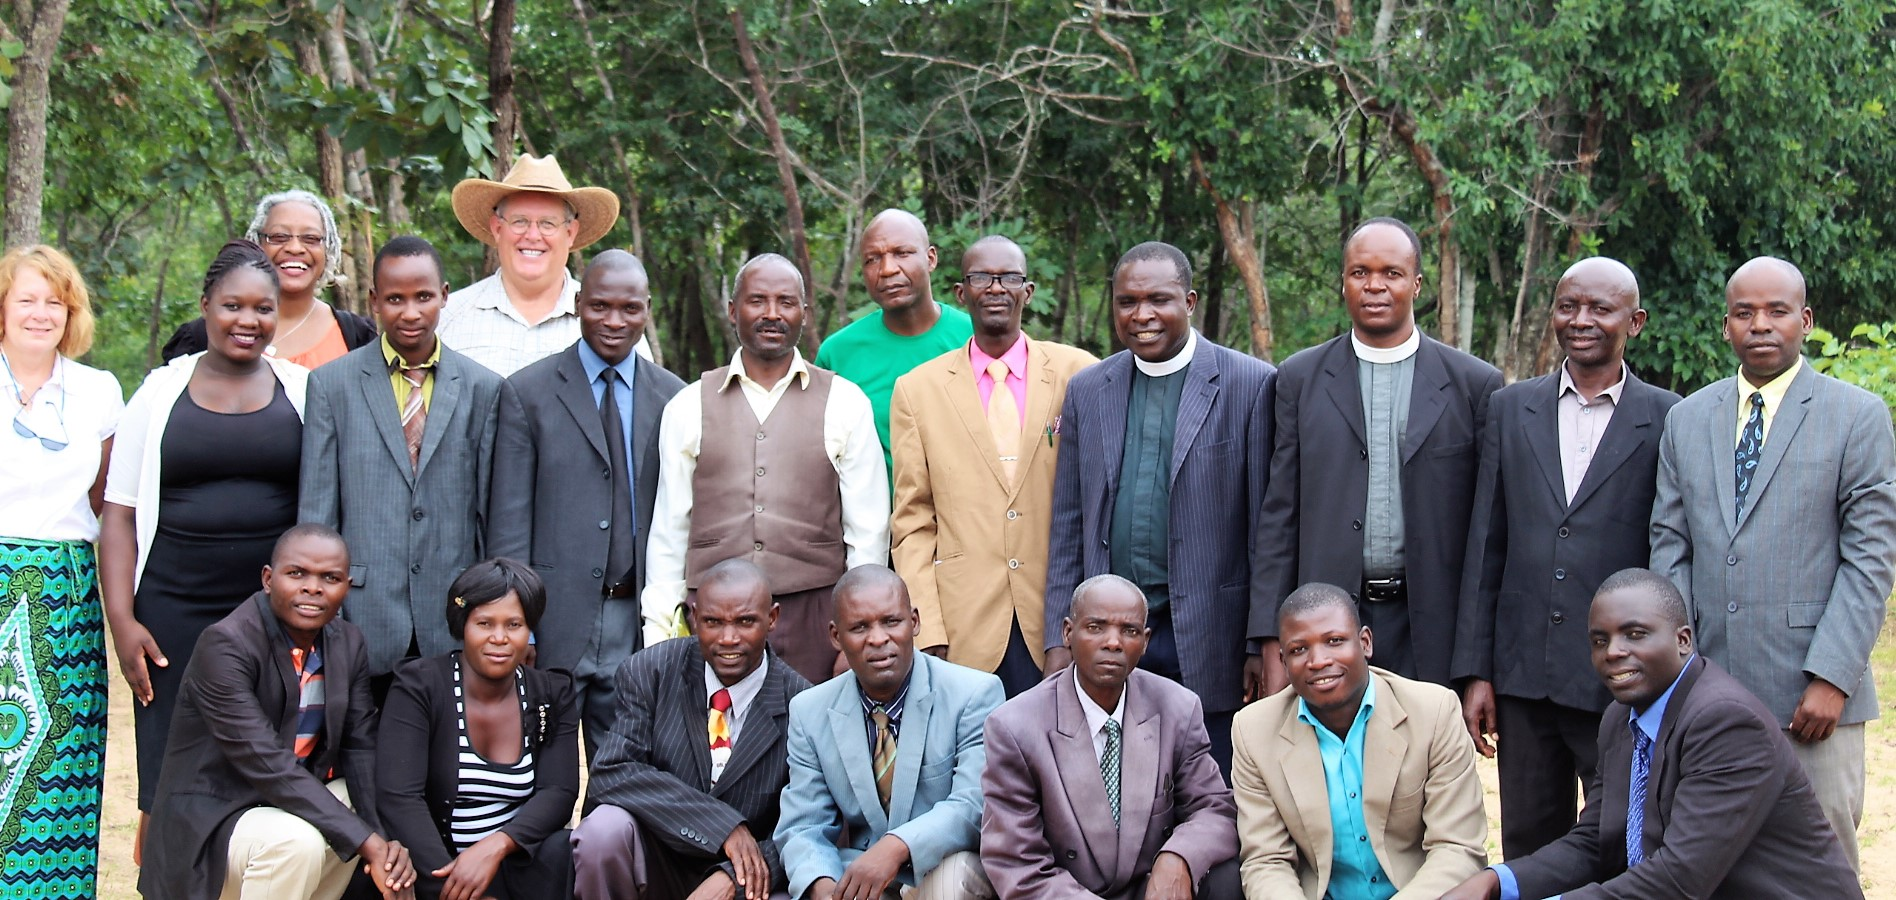 Students at CCAP Zambia Chasefu Theological College with Acting Principal Rev. Lazarus Chilenje (2nd row 3rd from right) and CCAP Zambia Moderator Rev. Chizason Chunda (2nd row 4th from right) and guests in January 2019, rural eastern Zambia.